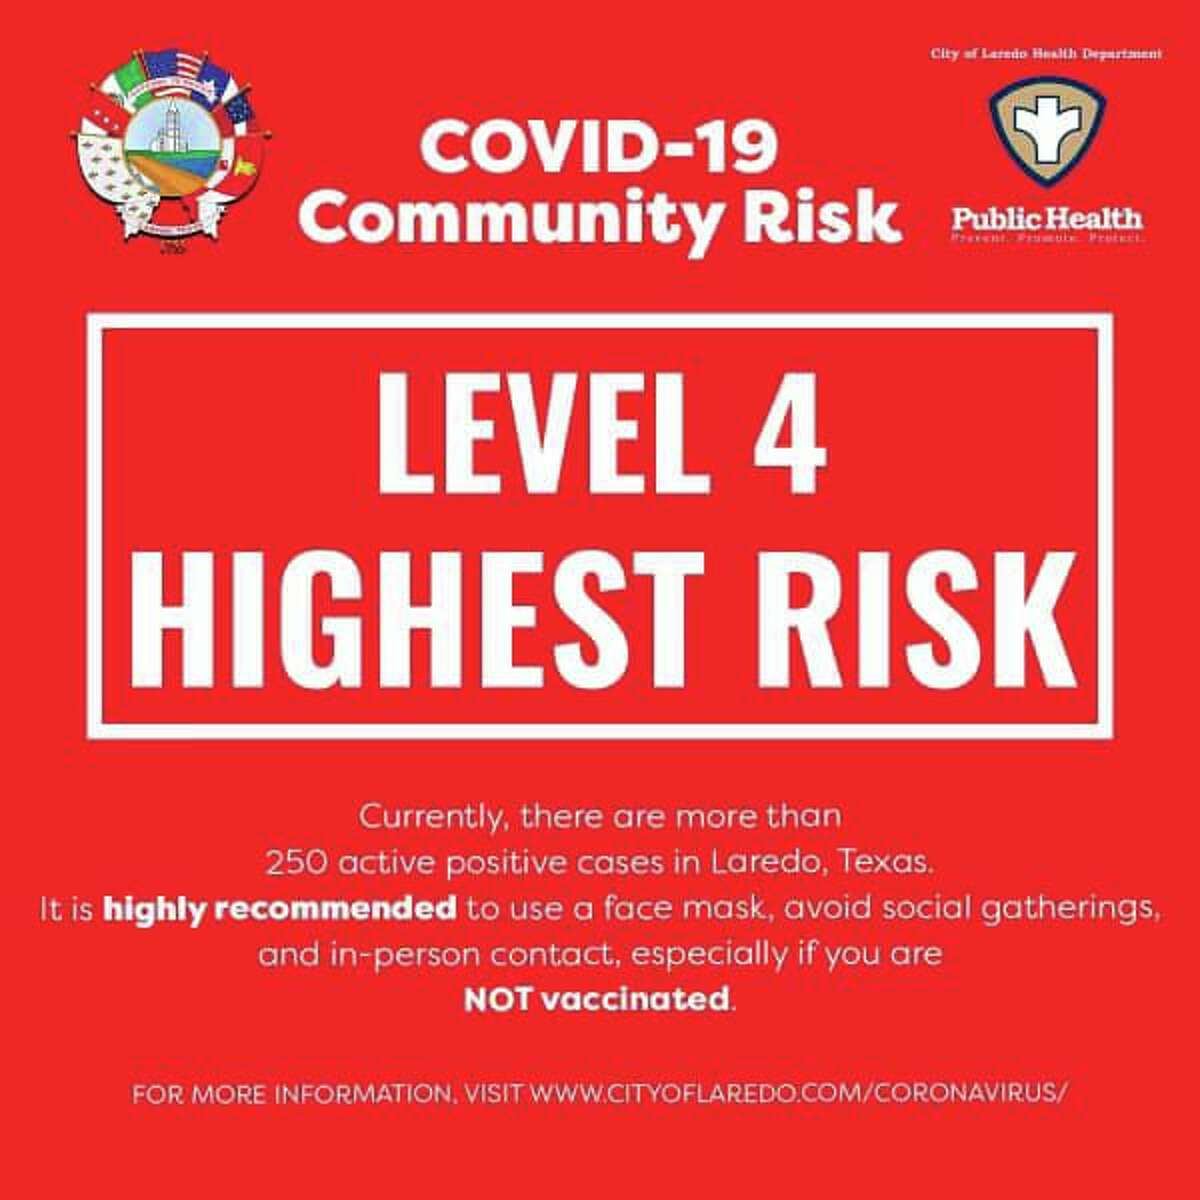 Laredo is at Level 4 in its color-coded advisory system deeming the area at the highest risk for COVID-19.